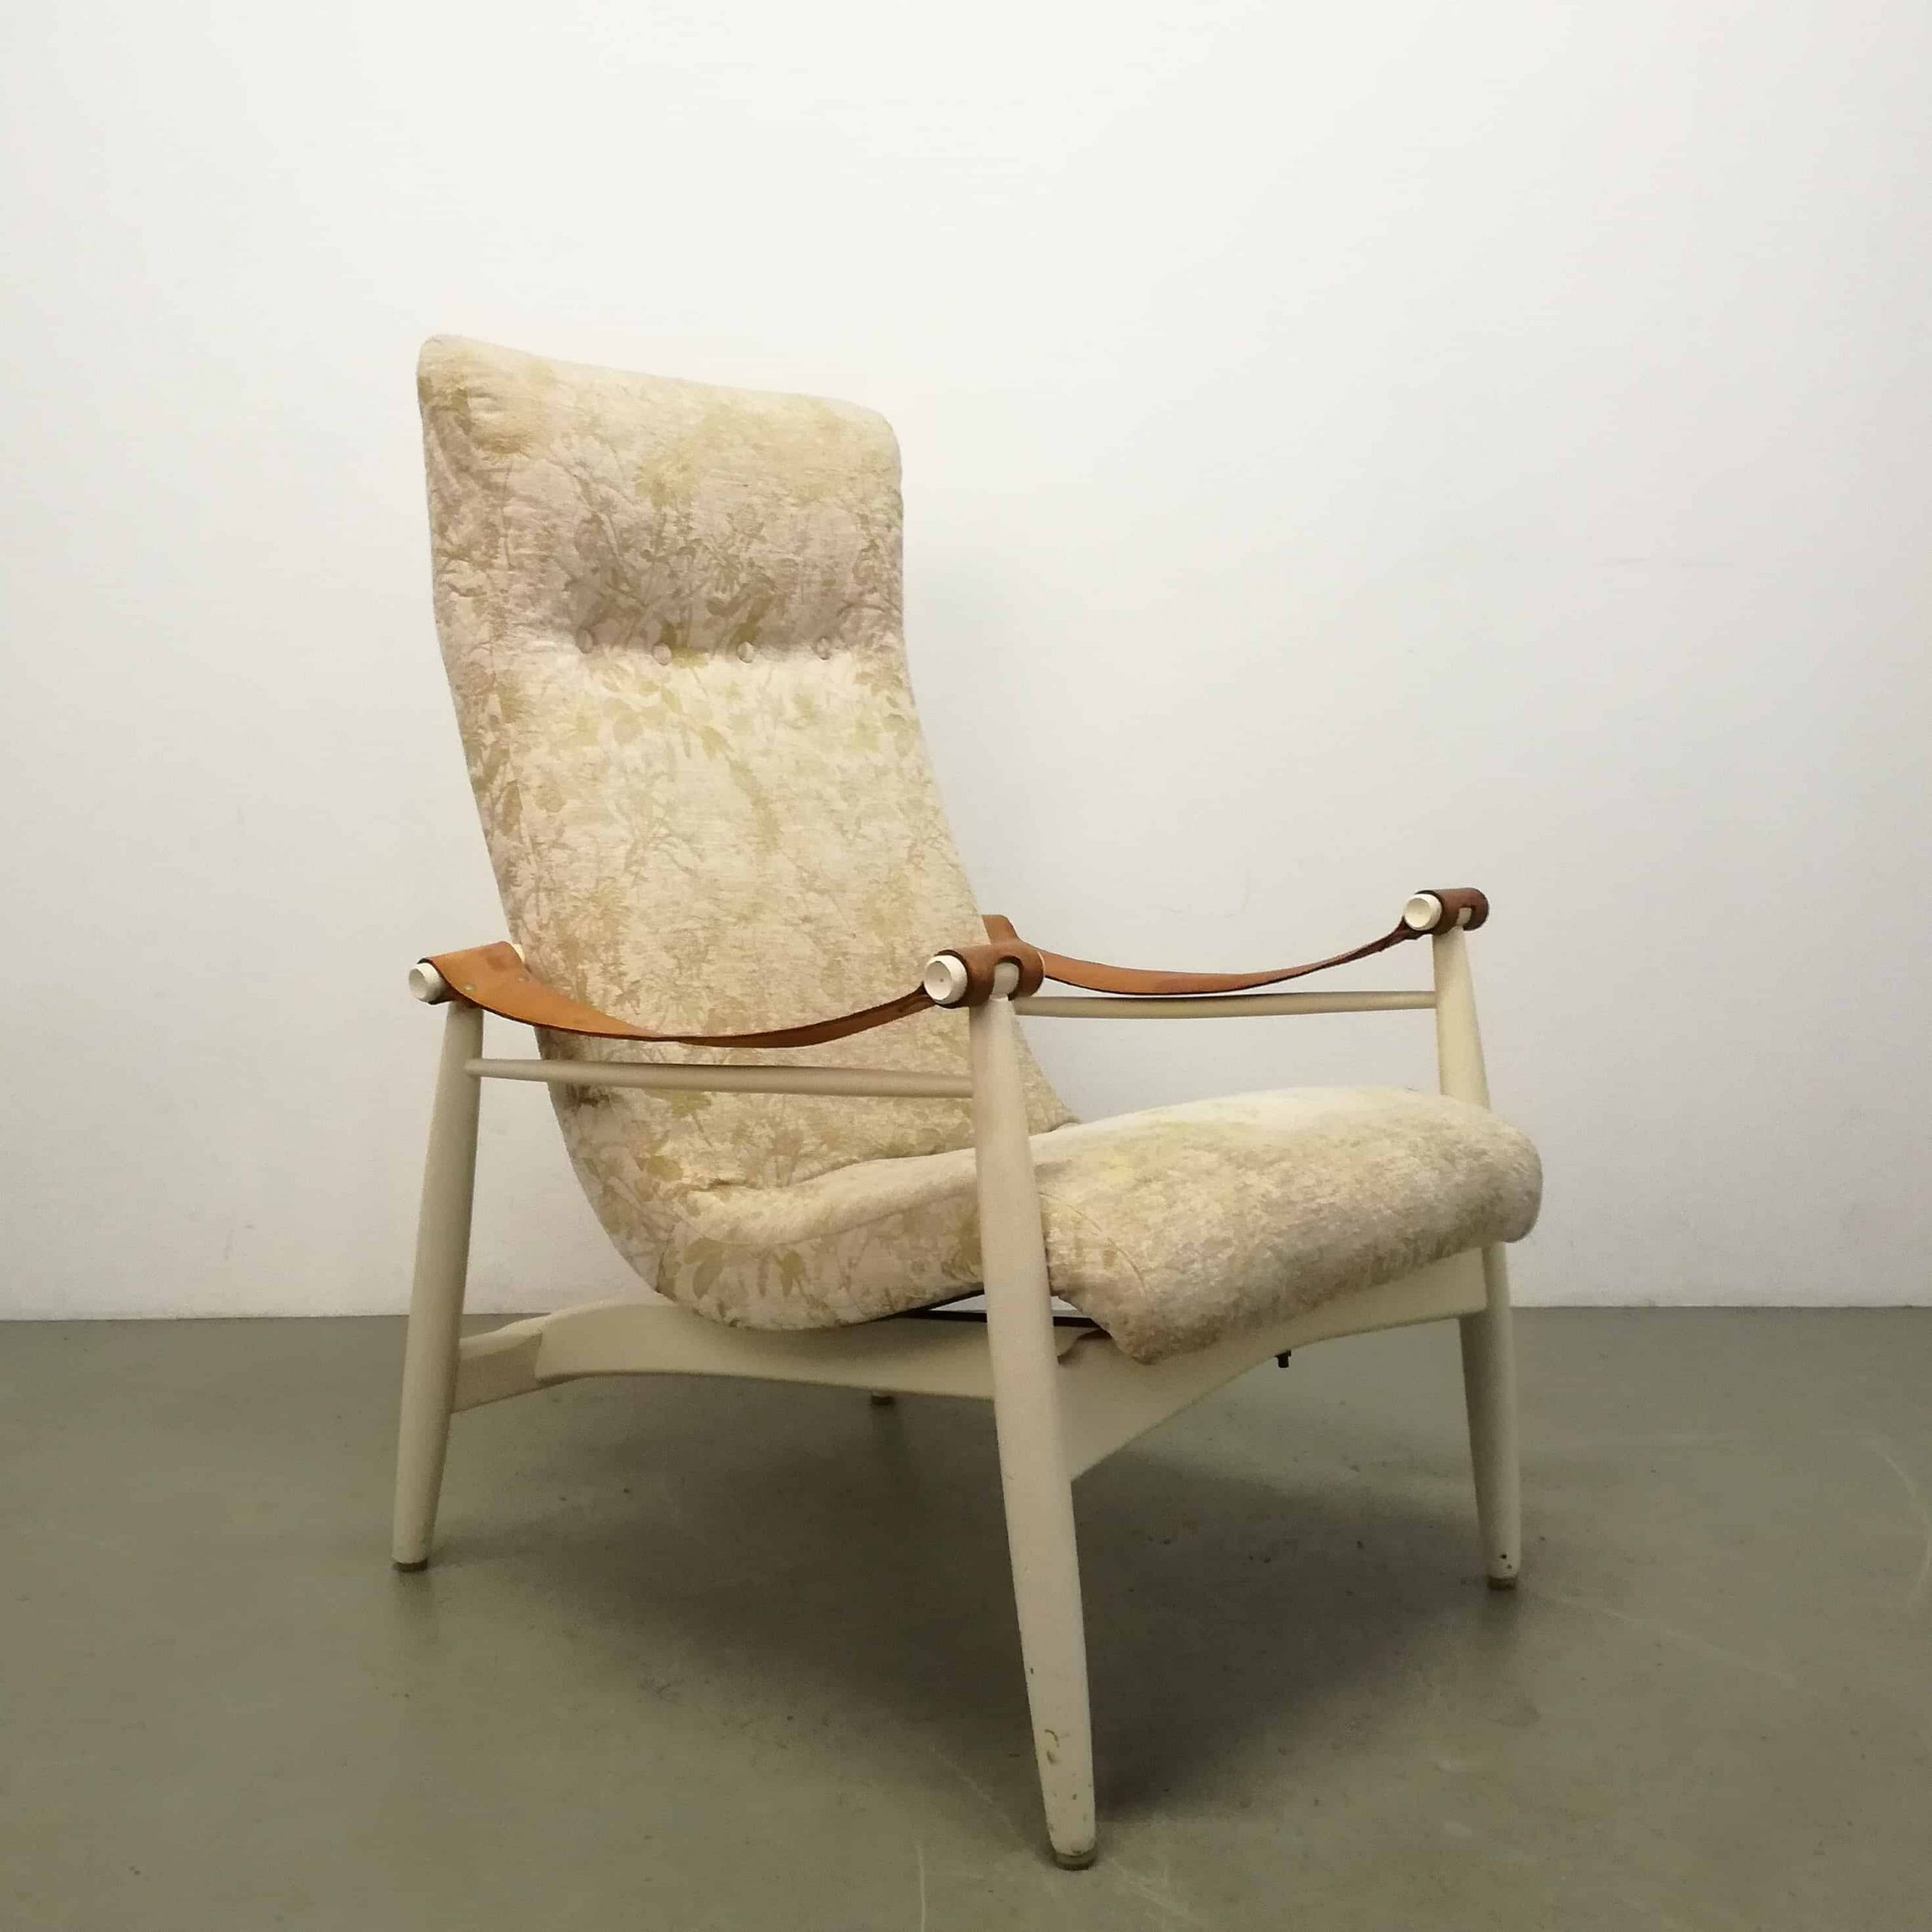 chair-armchair-pj-muntendam-gebroeders-jonkers-mid-century-dutch-years-60-1960-wood-leather